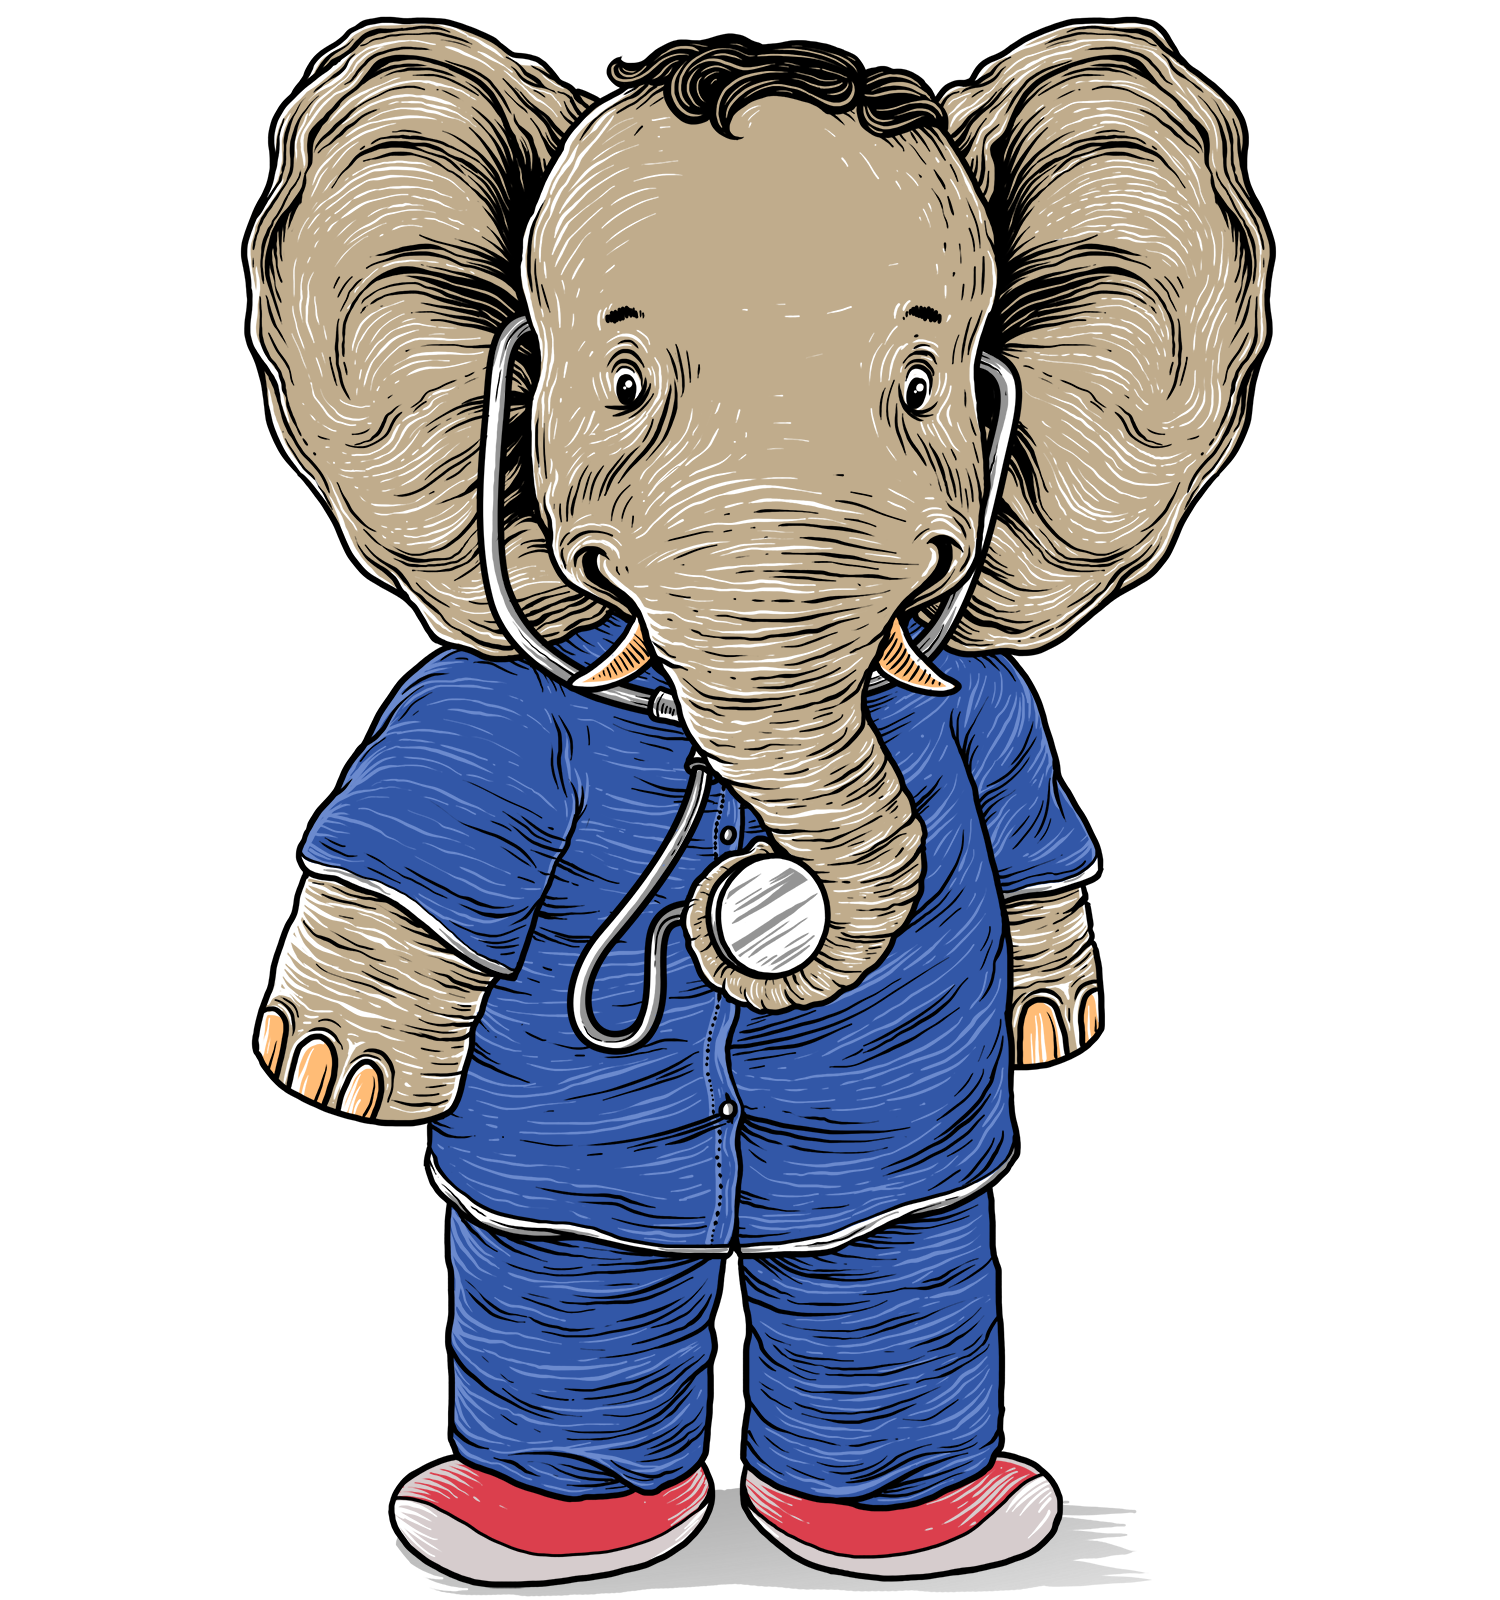 Eli the elephant doctor is blue to calm you!